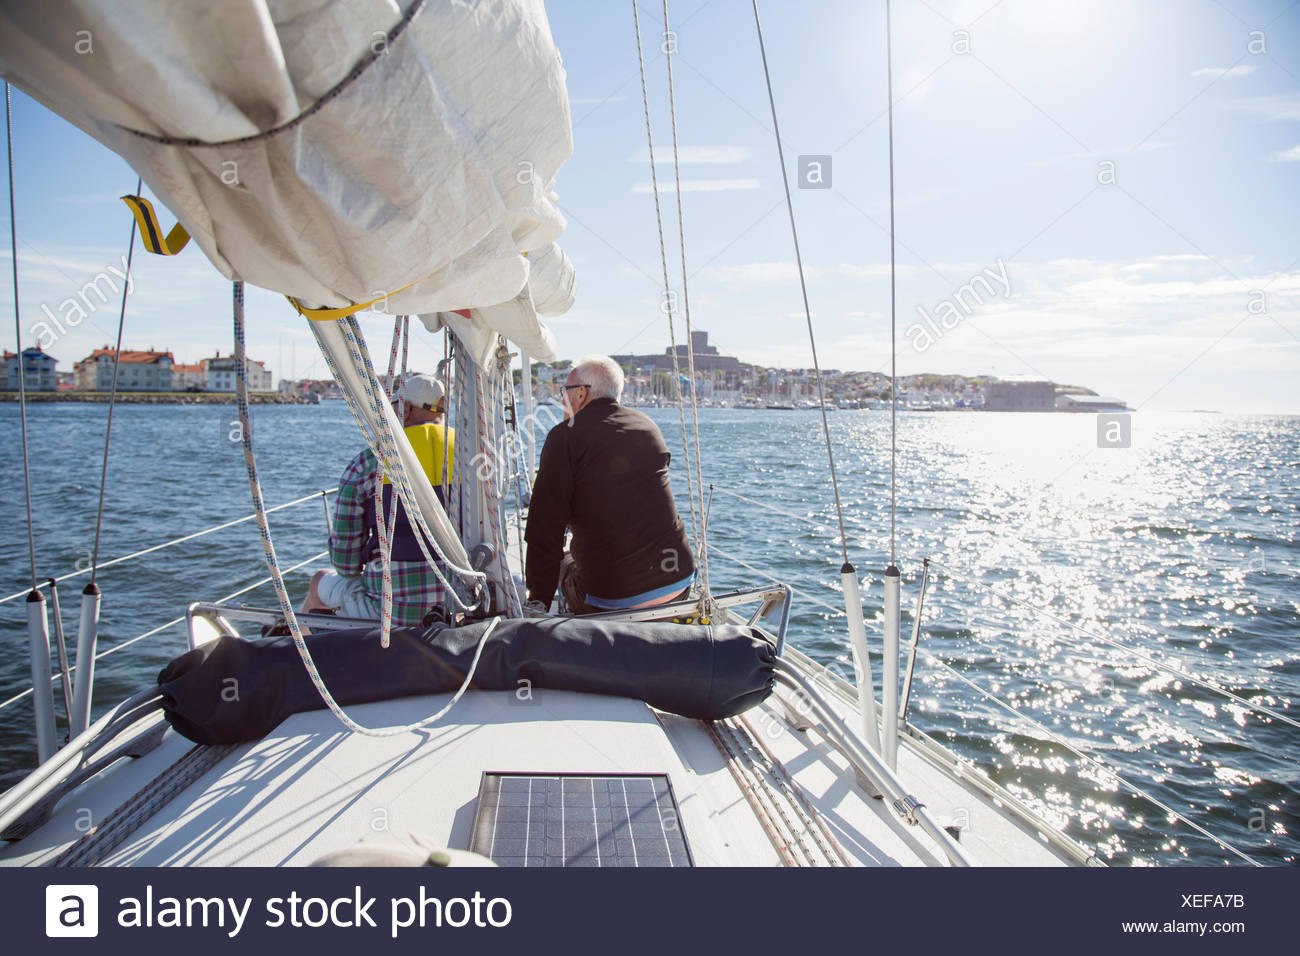 Sweden, Vastkusten, Bohuslan, Marstrand, Senior men sailing in bay - Stock Image